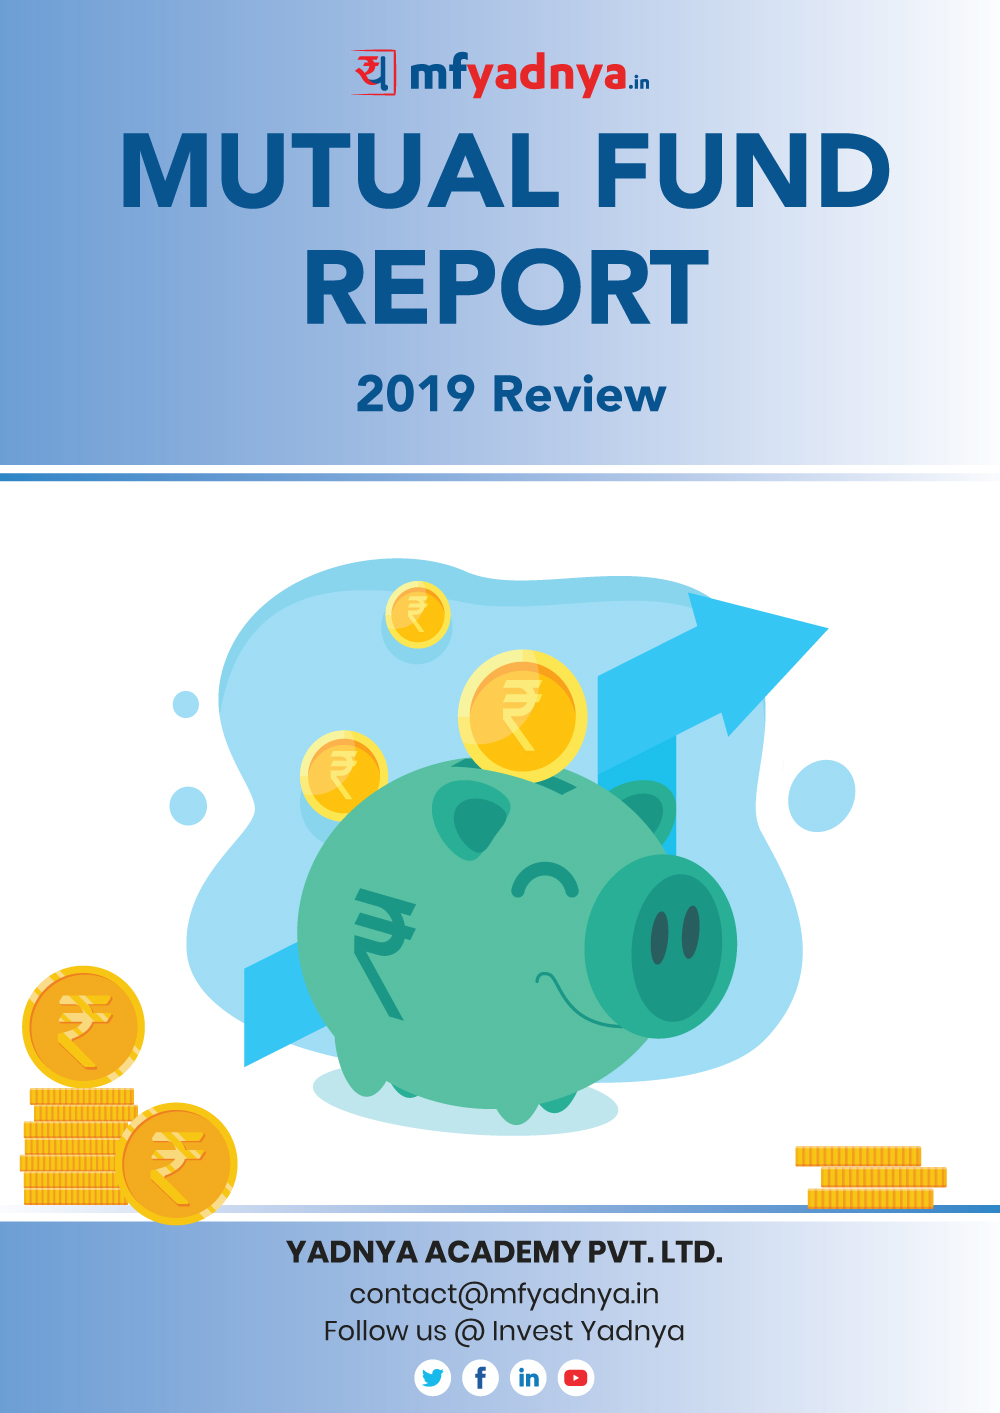 Mutual Fund Report 2019 gives complete review of our Mutual Fund Industry in 2019. Questions such as - What were the major buys and sell and which Mutual Fund houses performed well? are answered with detail tables and graphs.